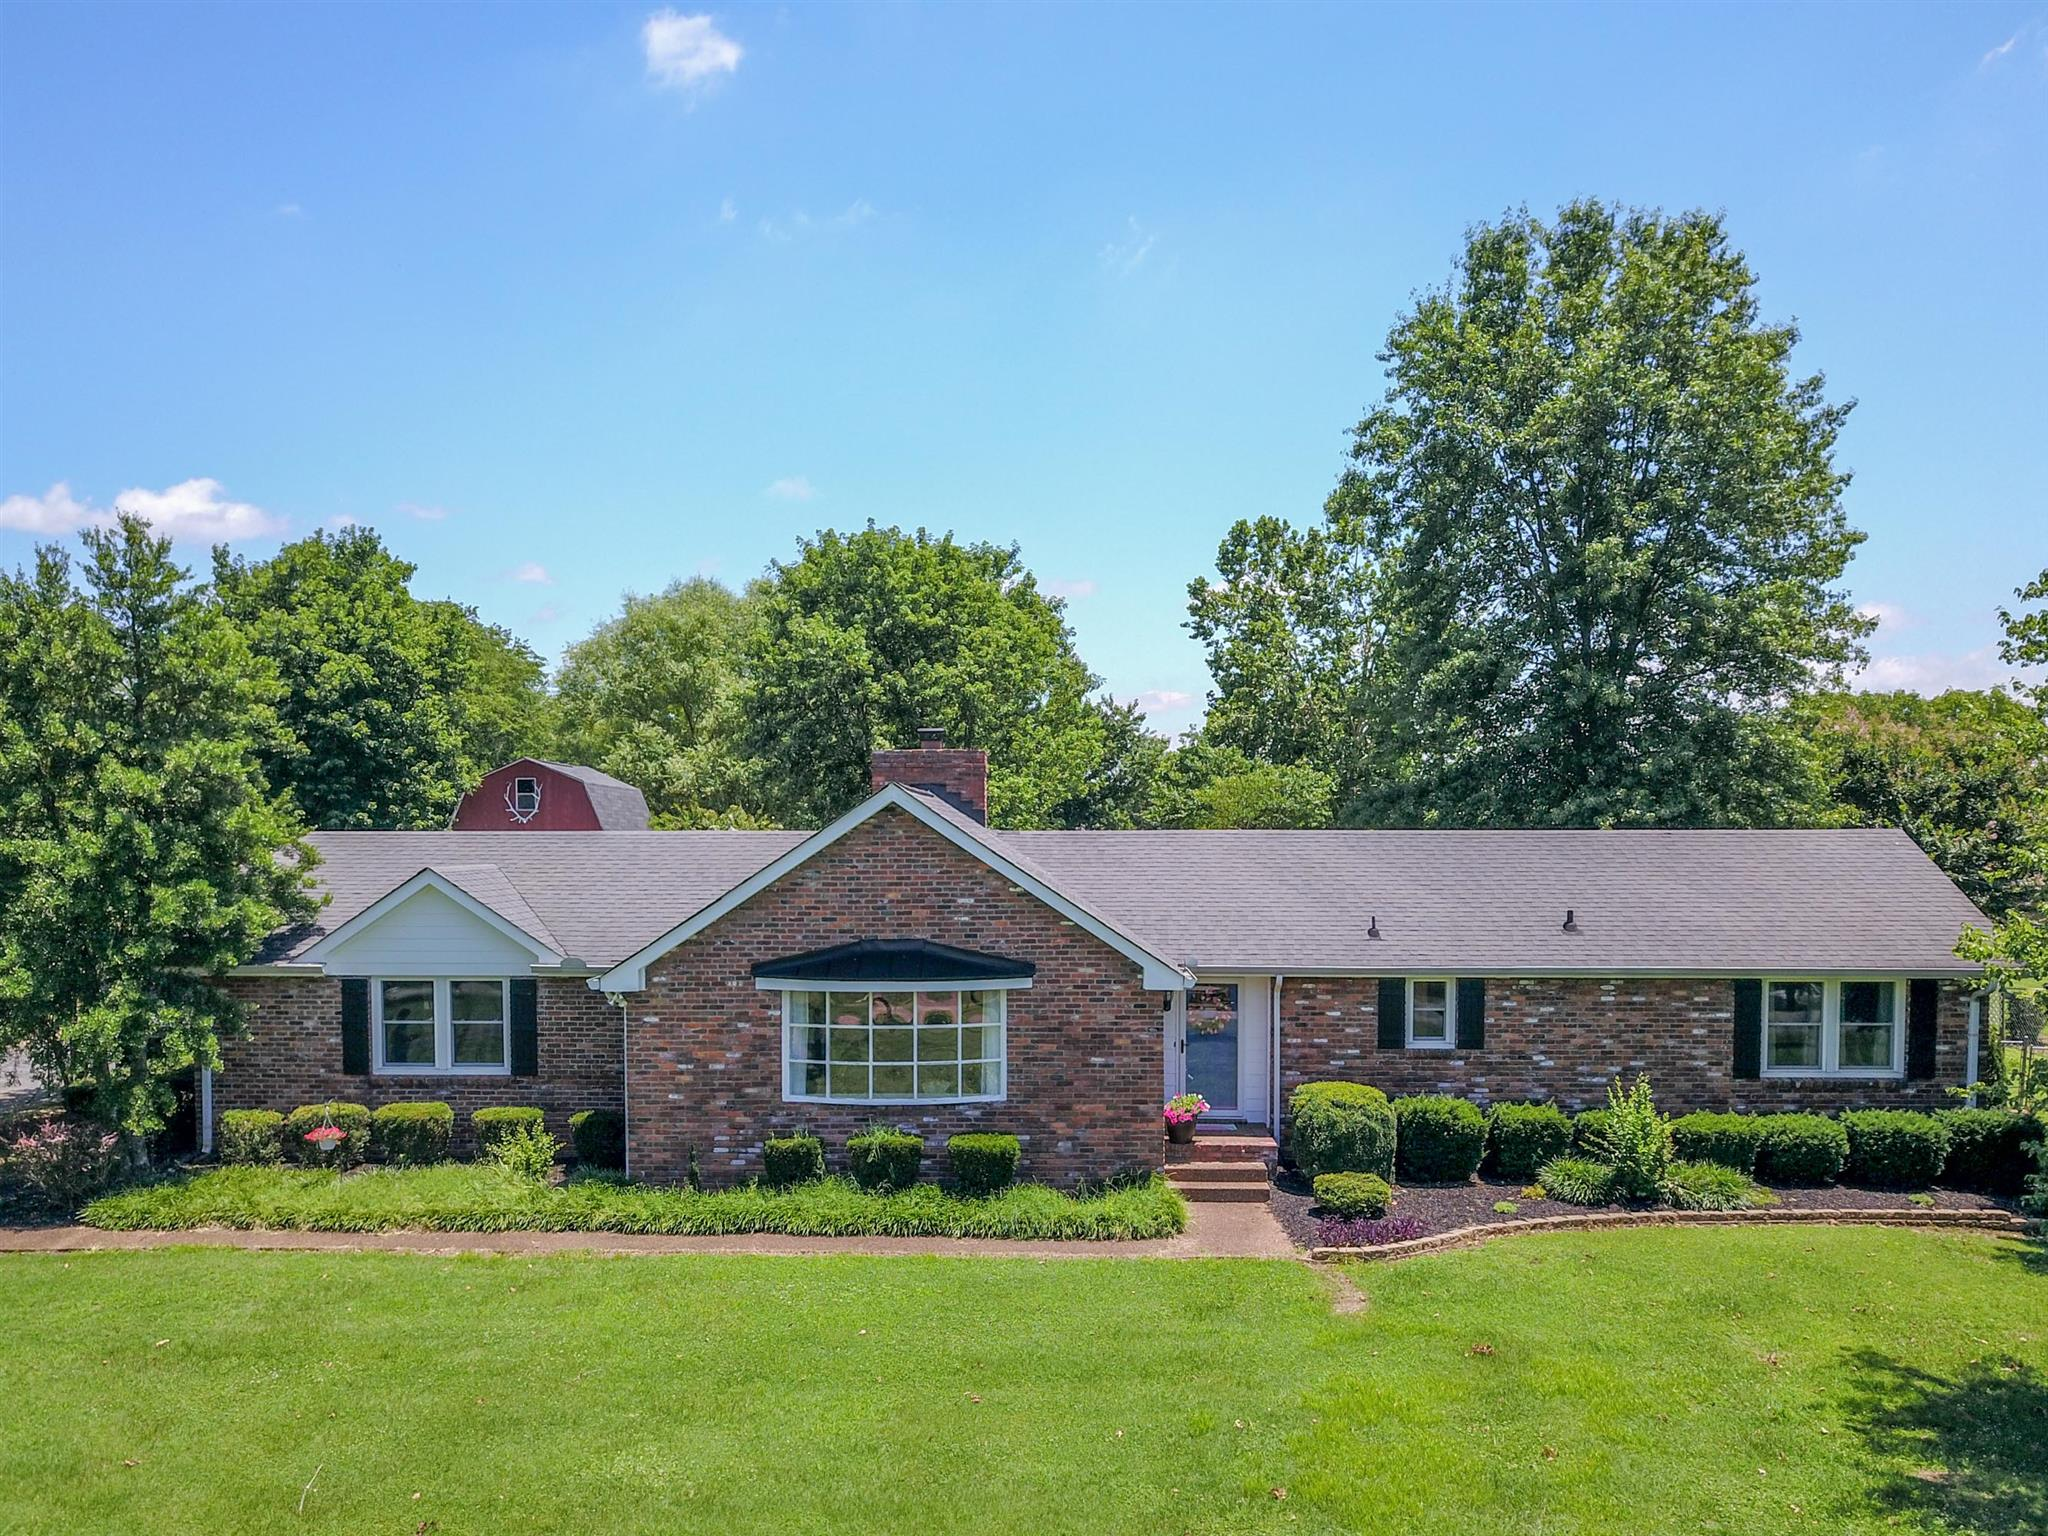 1408 Shoreside Dr, Hendersonville in Sumner County County, TN 37075 Home for Sale